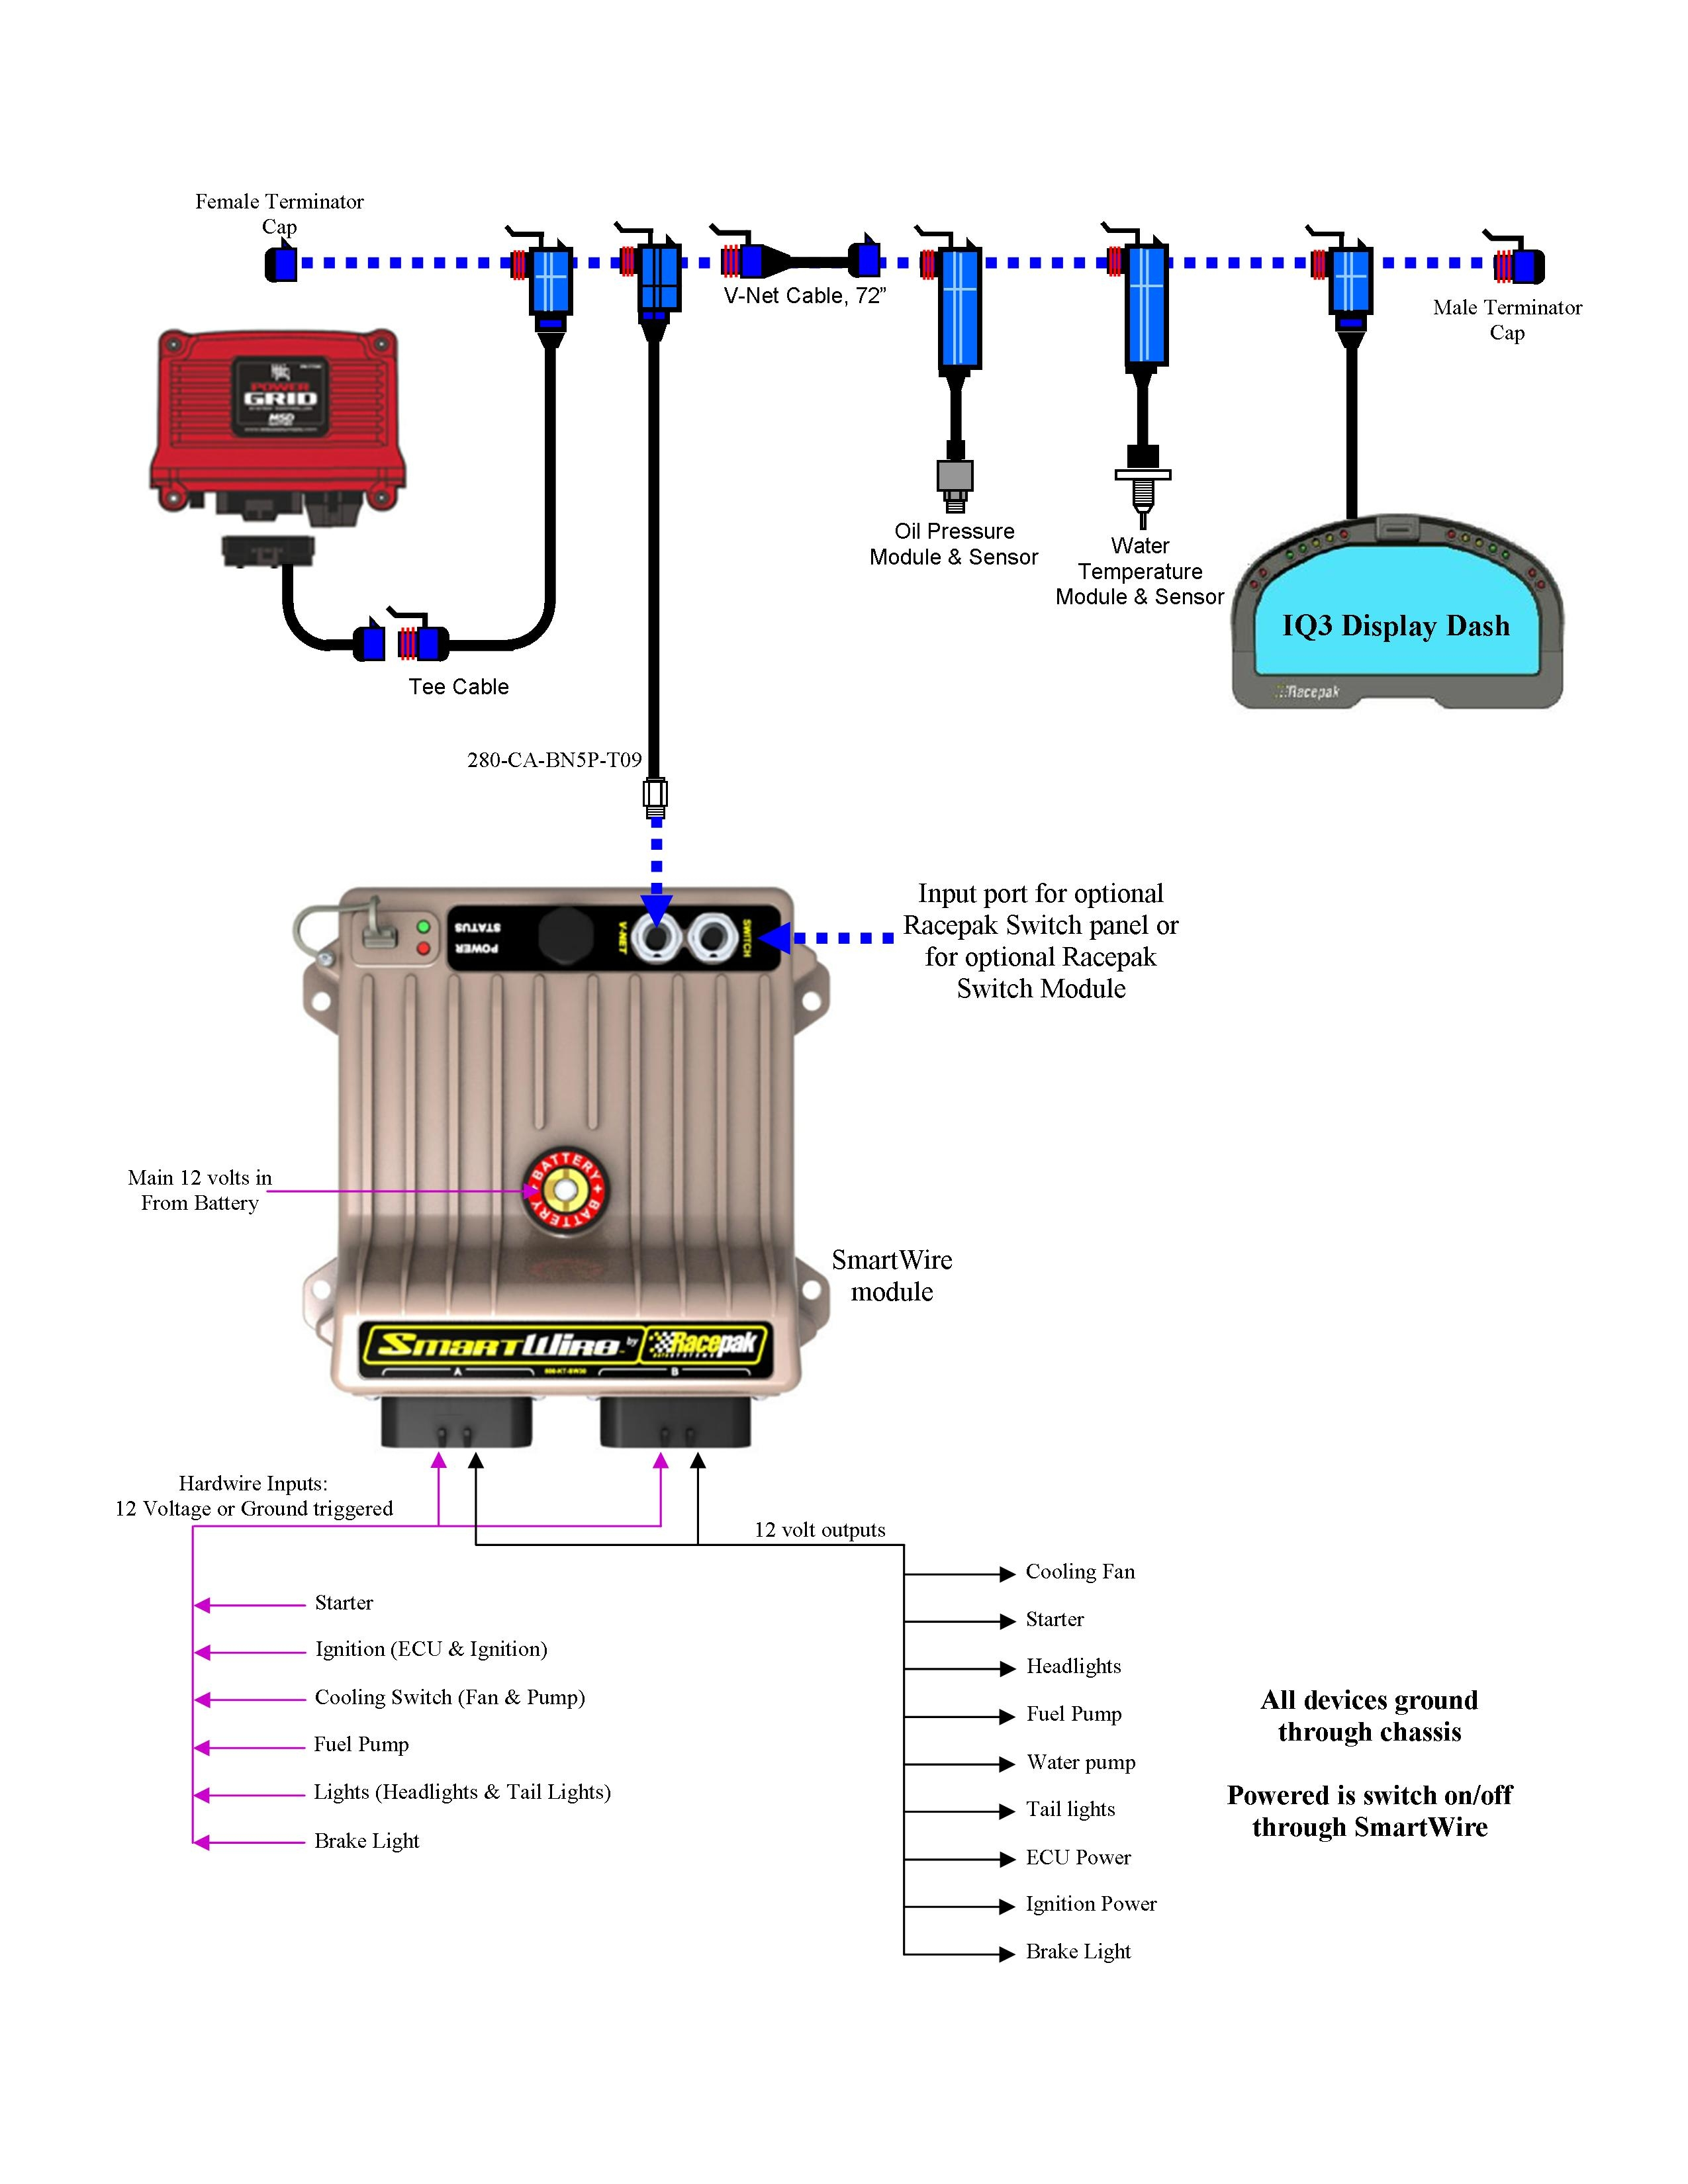 MSD Smartwire racepak wiring diagram msd 7al wiring \u2022 wiring diagrams j squared co Terminator Time Loop Diagram at crackthecode.co